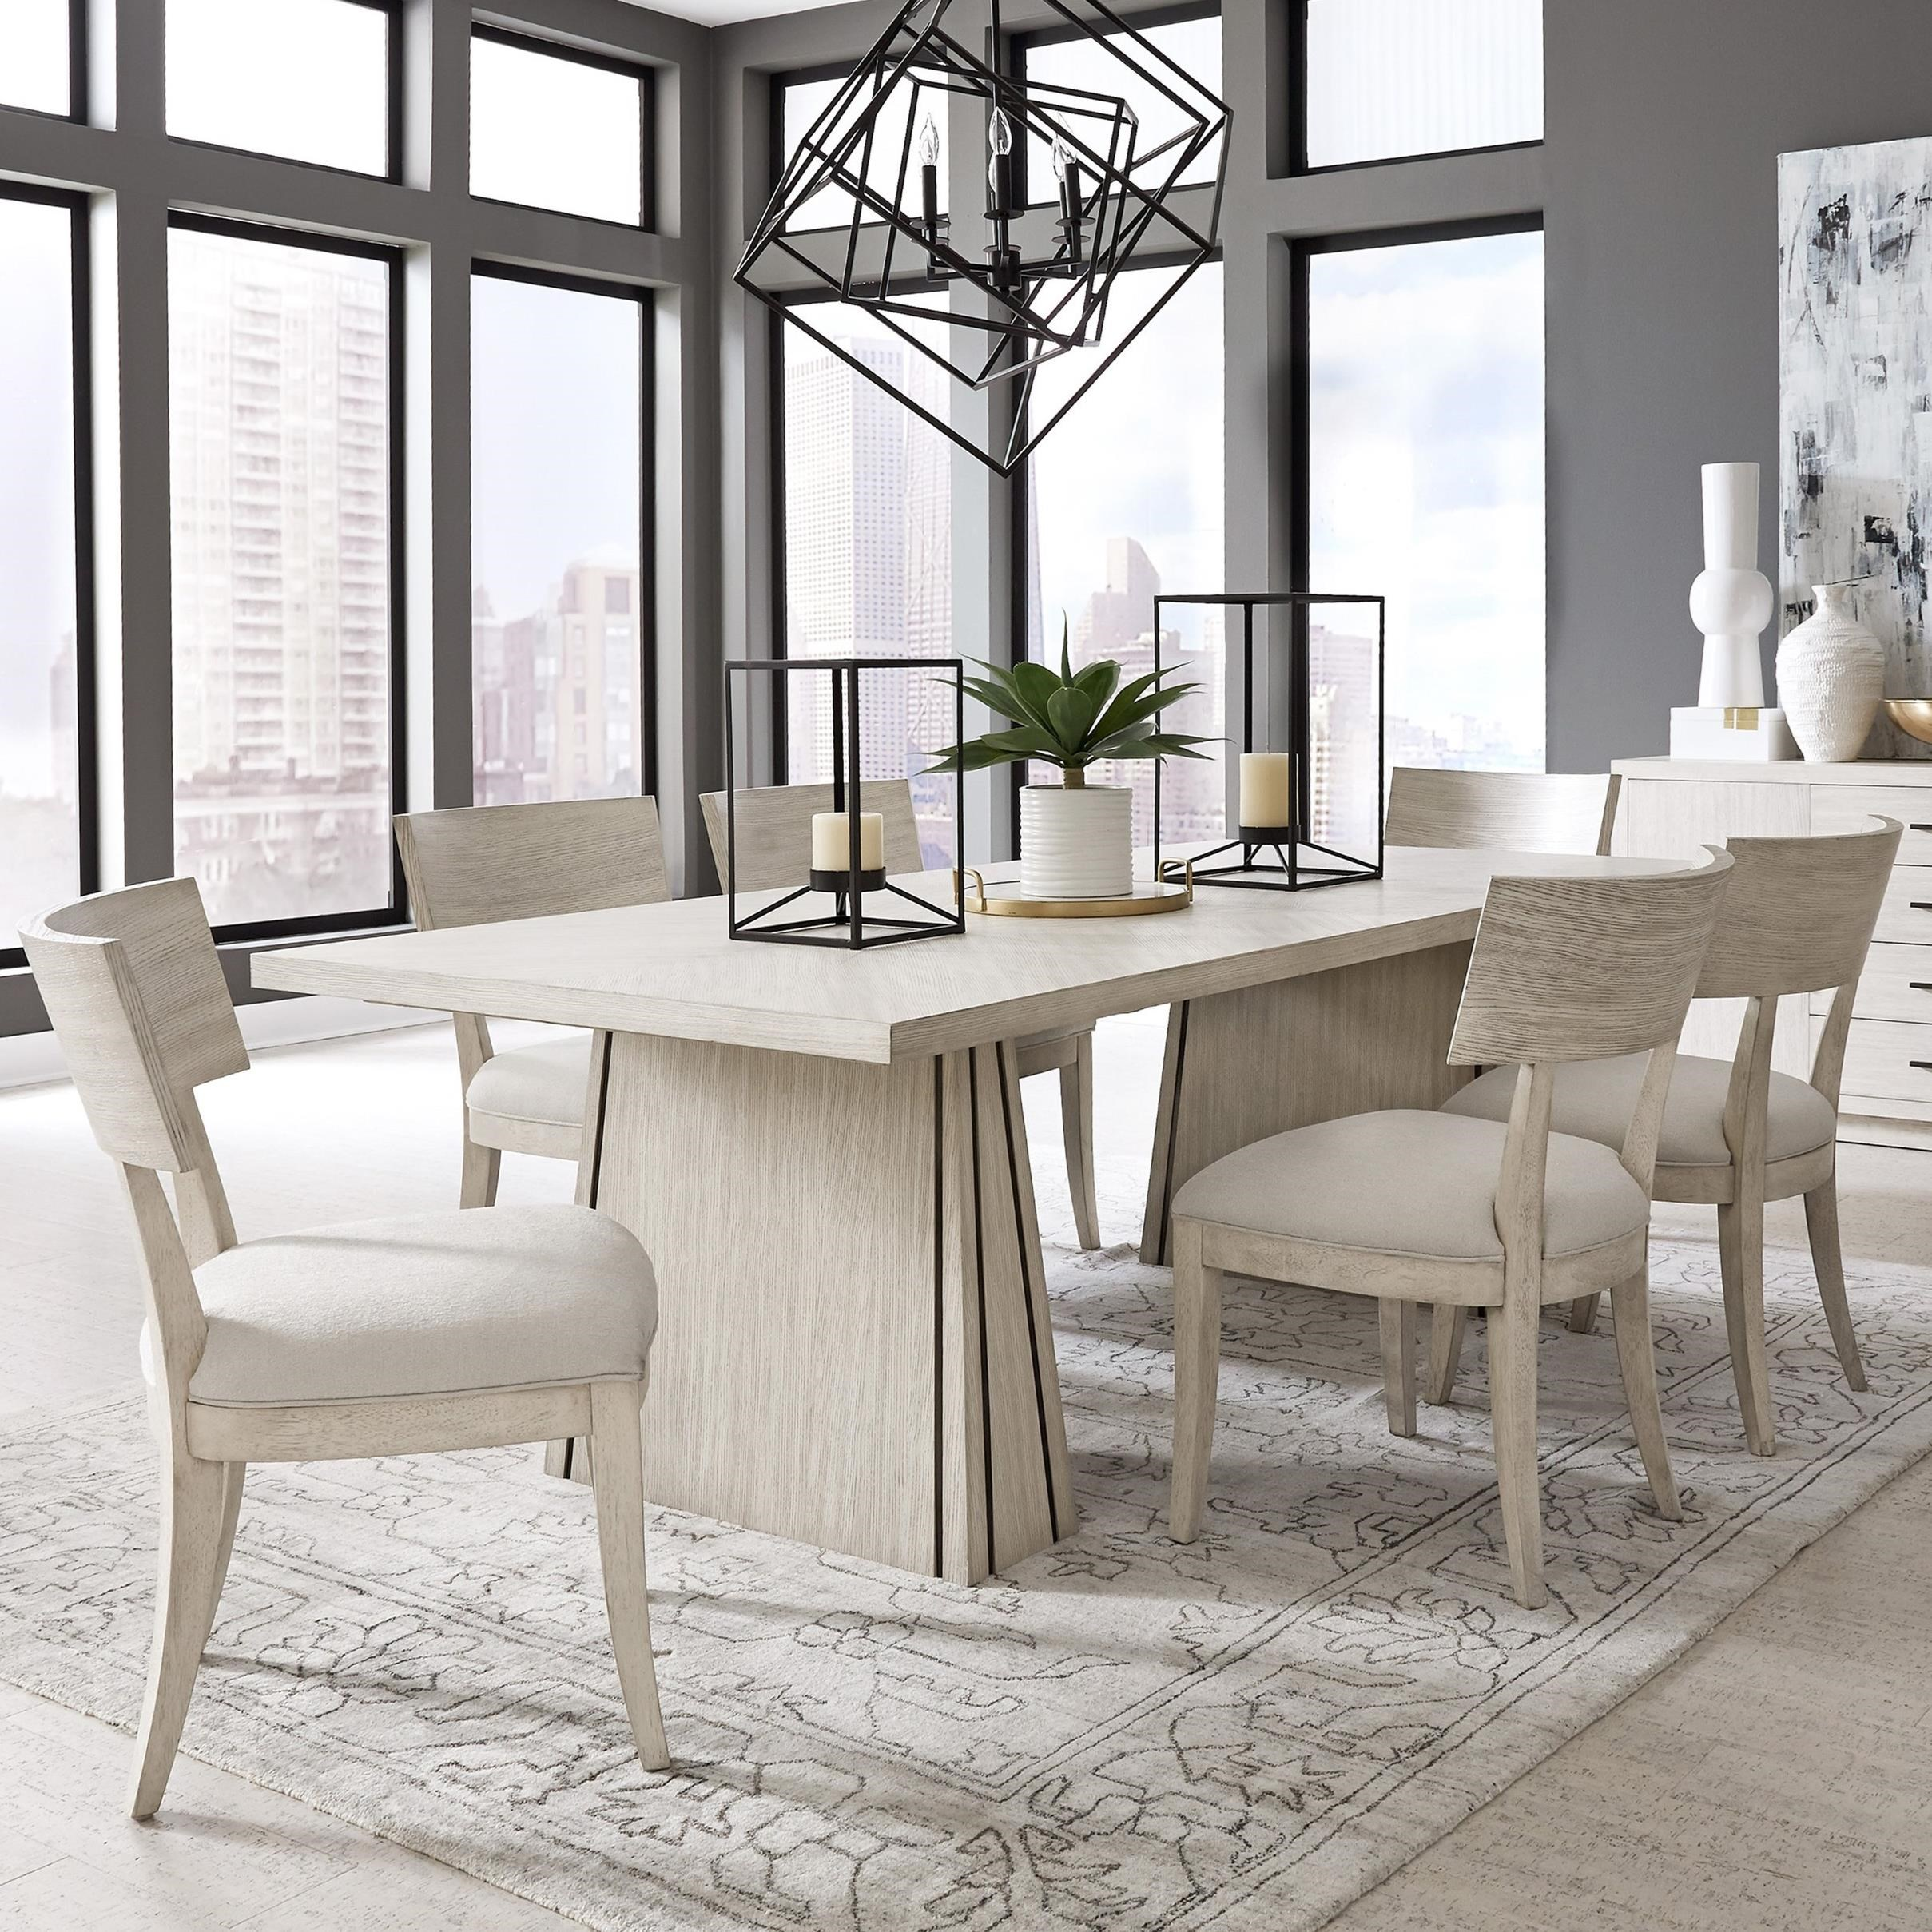 District 3 Table and Chair Set by Pulaski Furniture at Alison Craig Home Furnishings